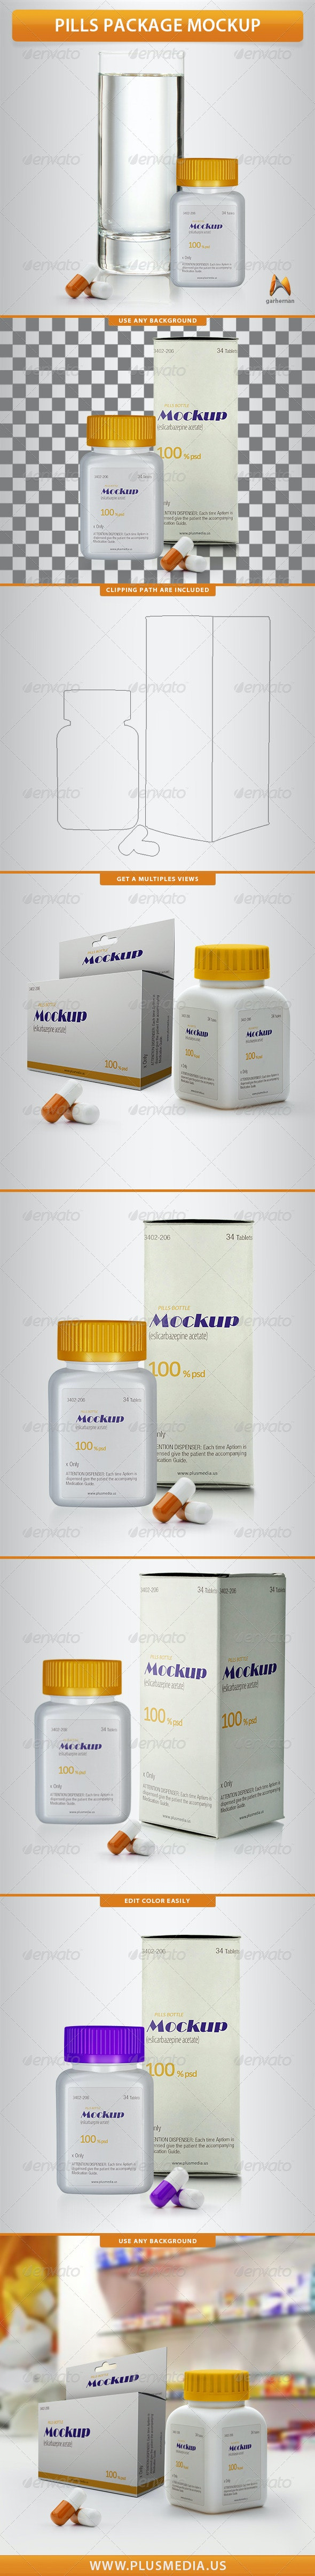 Pills Package Mockup - Product Mock-Ups Graphics